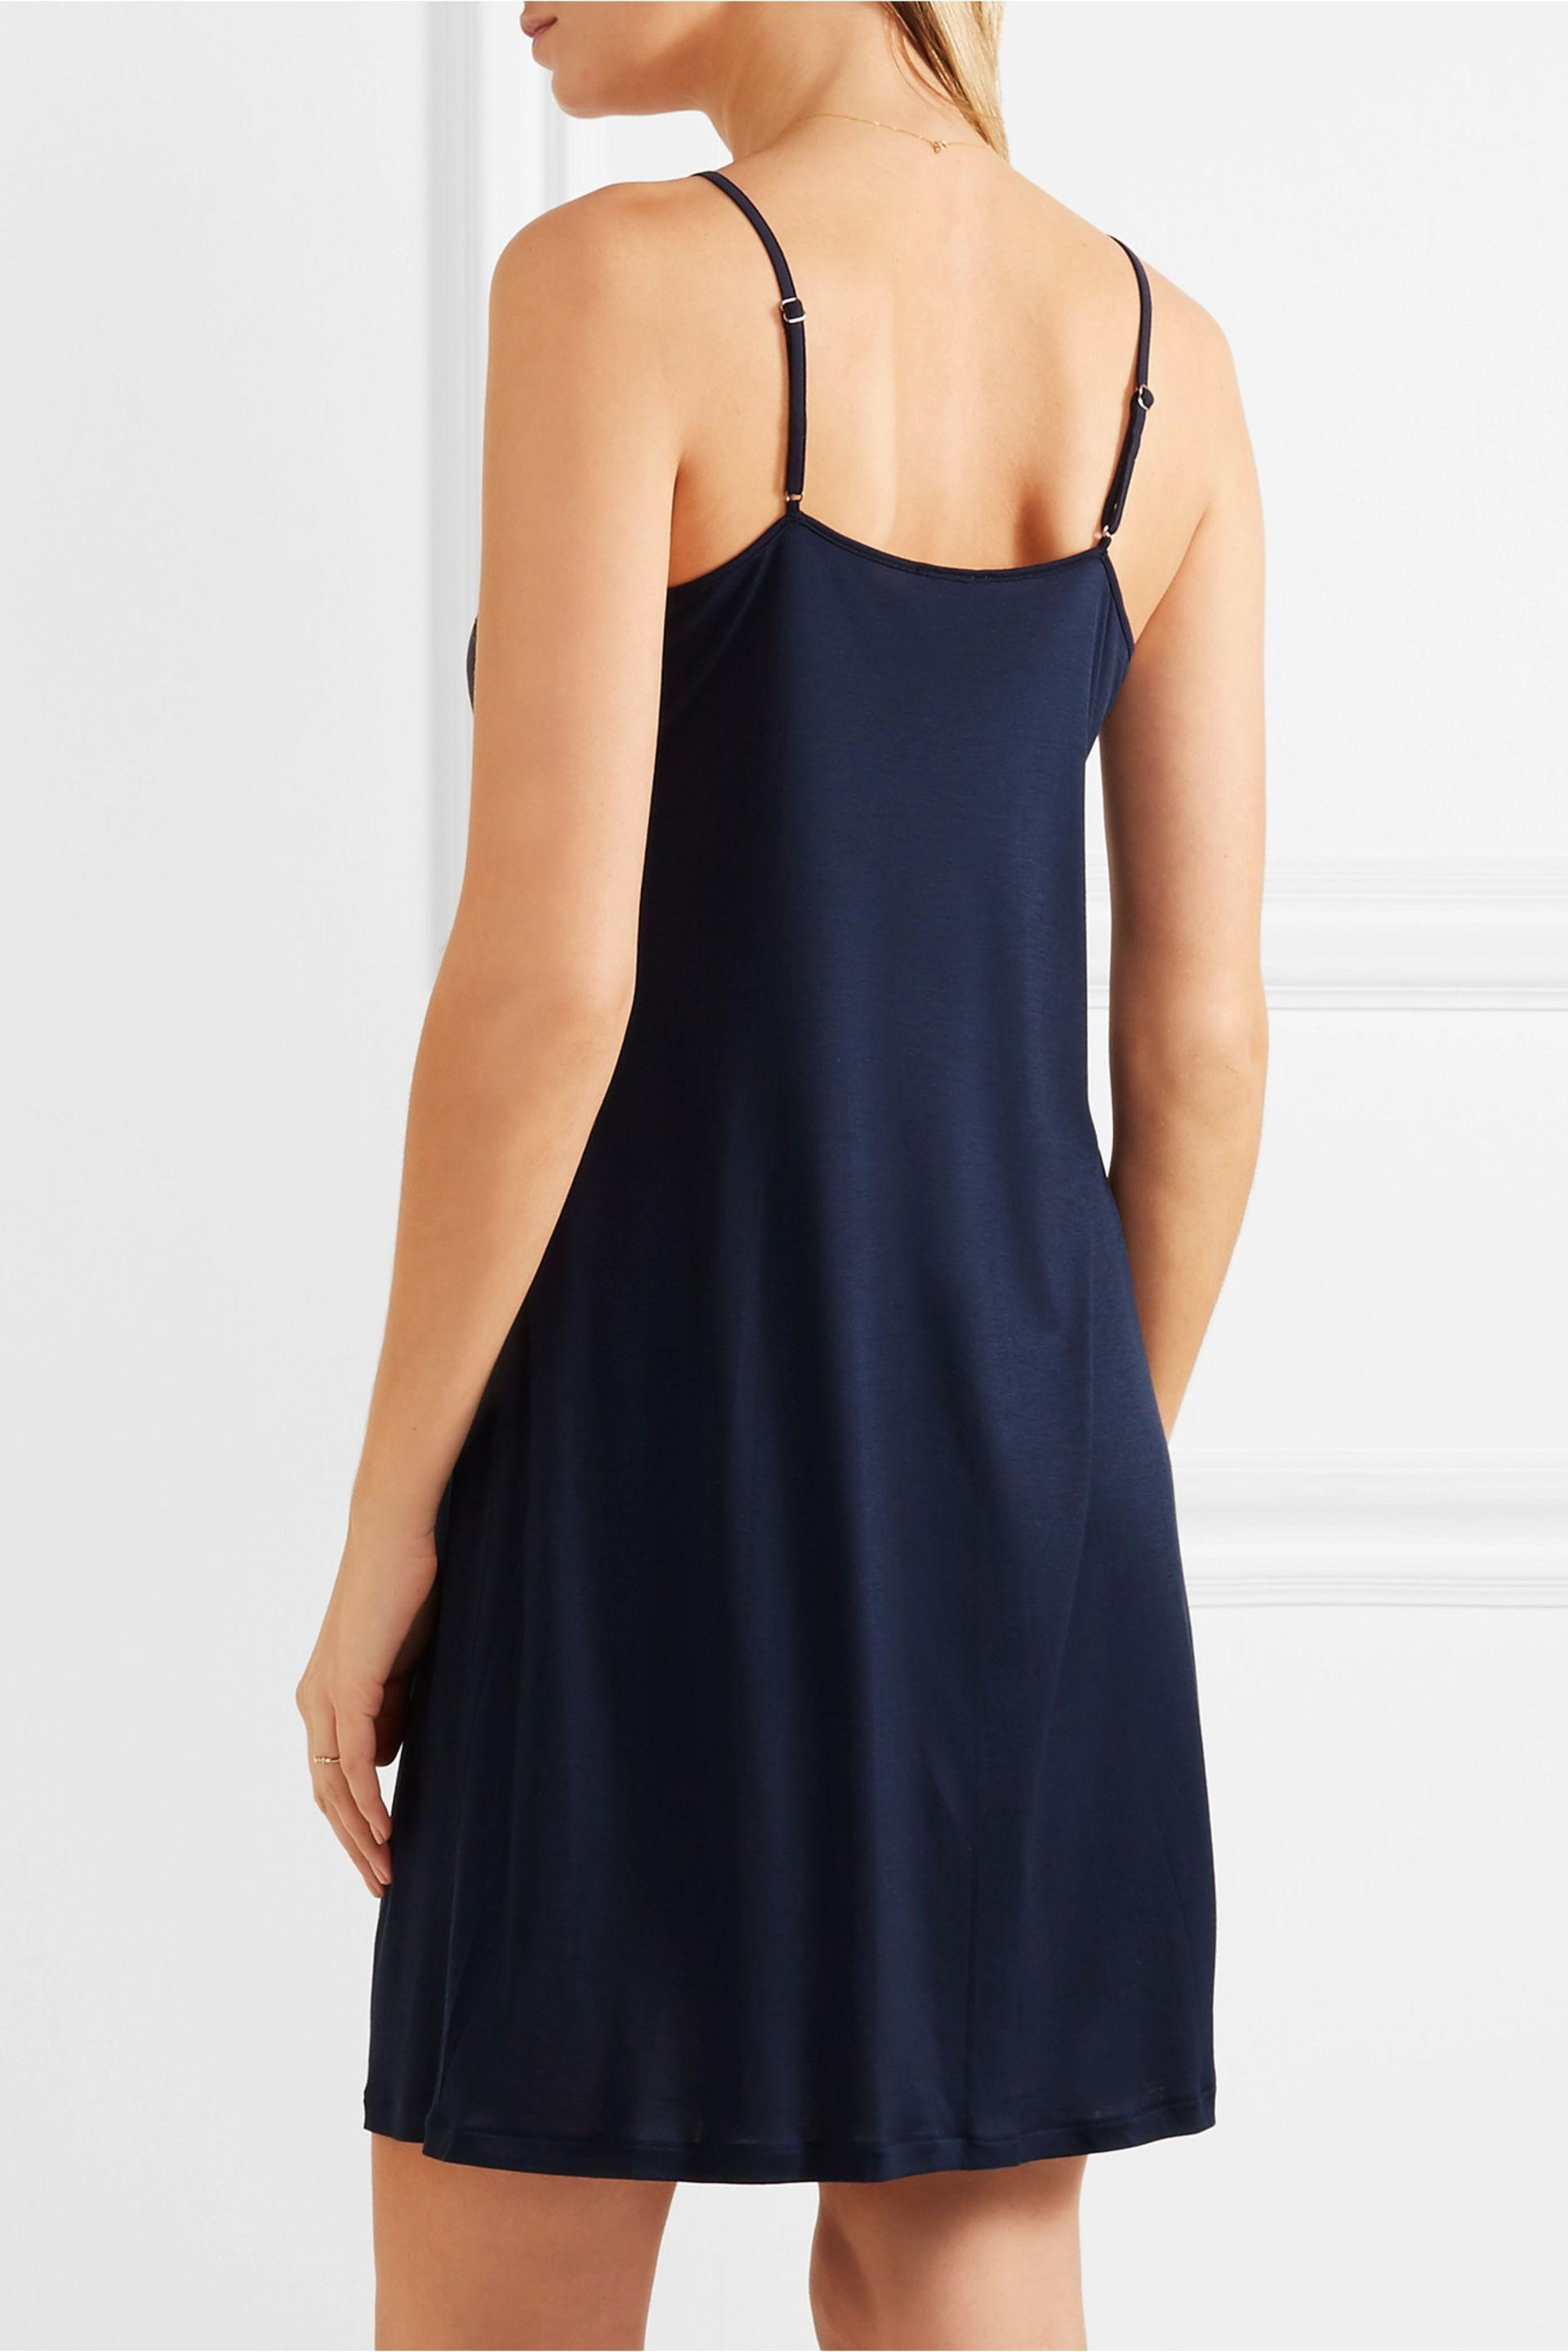 6c0ccdc462a4 Lyst - Hanro Livia Lace-trimmed Modal-jersey Nightdress in Blue